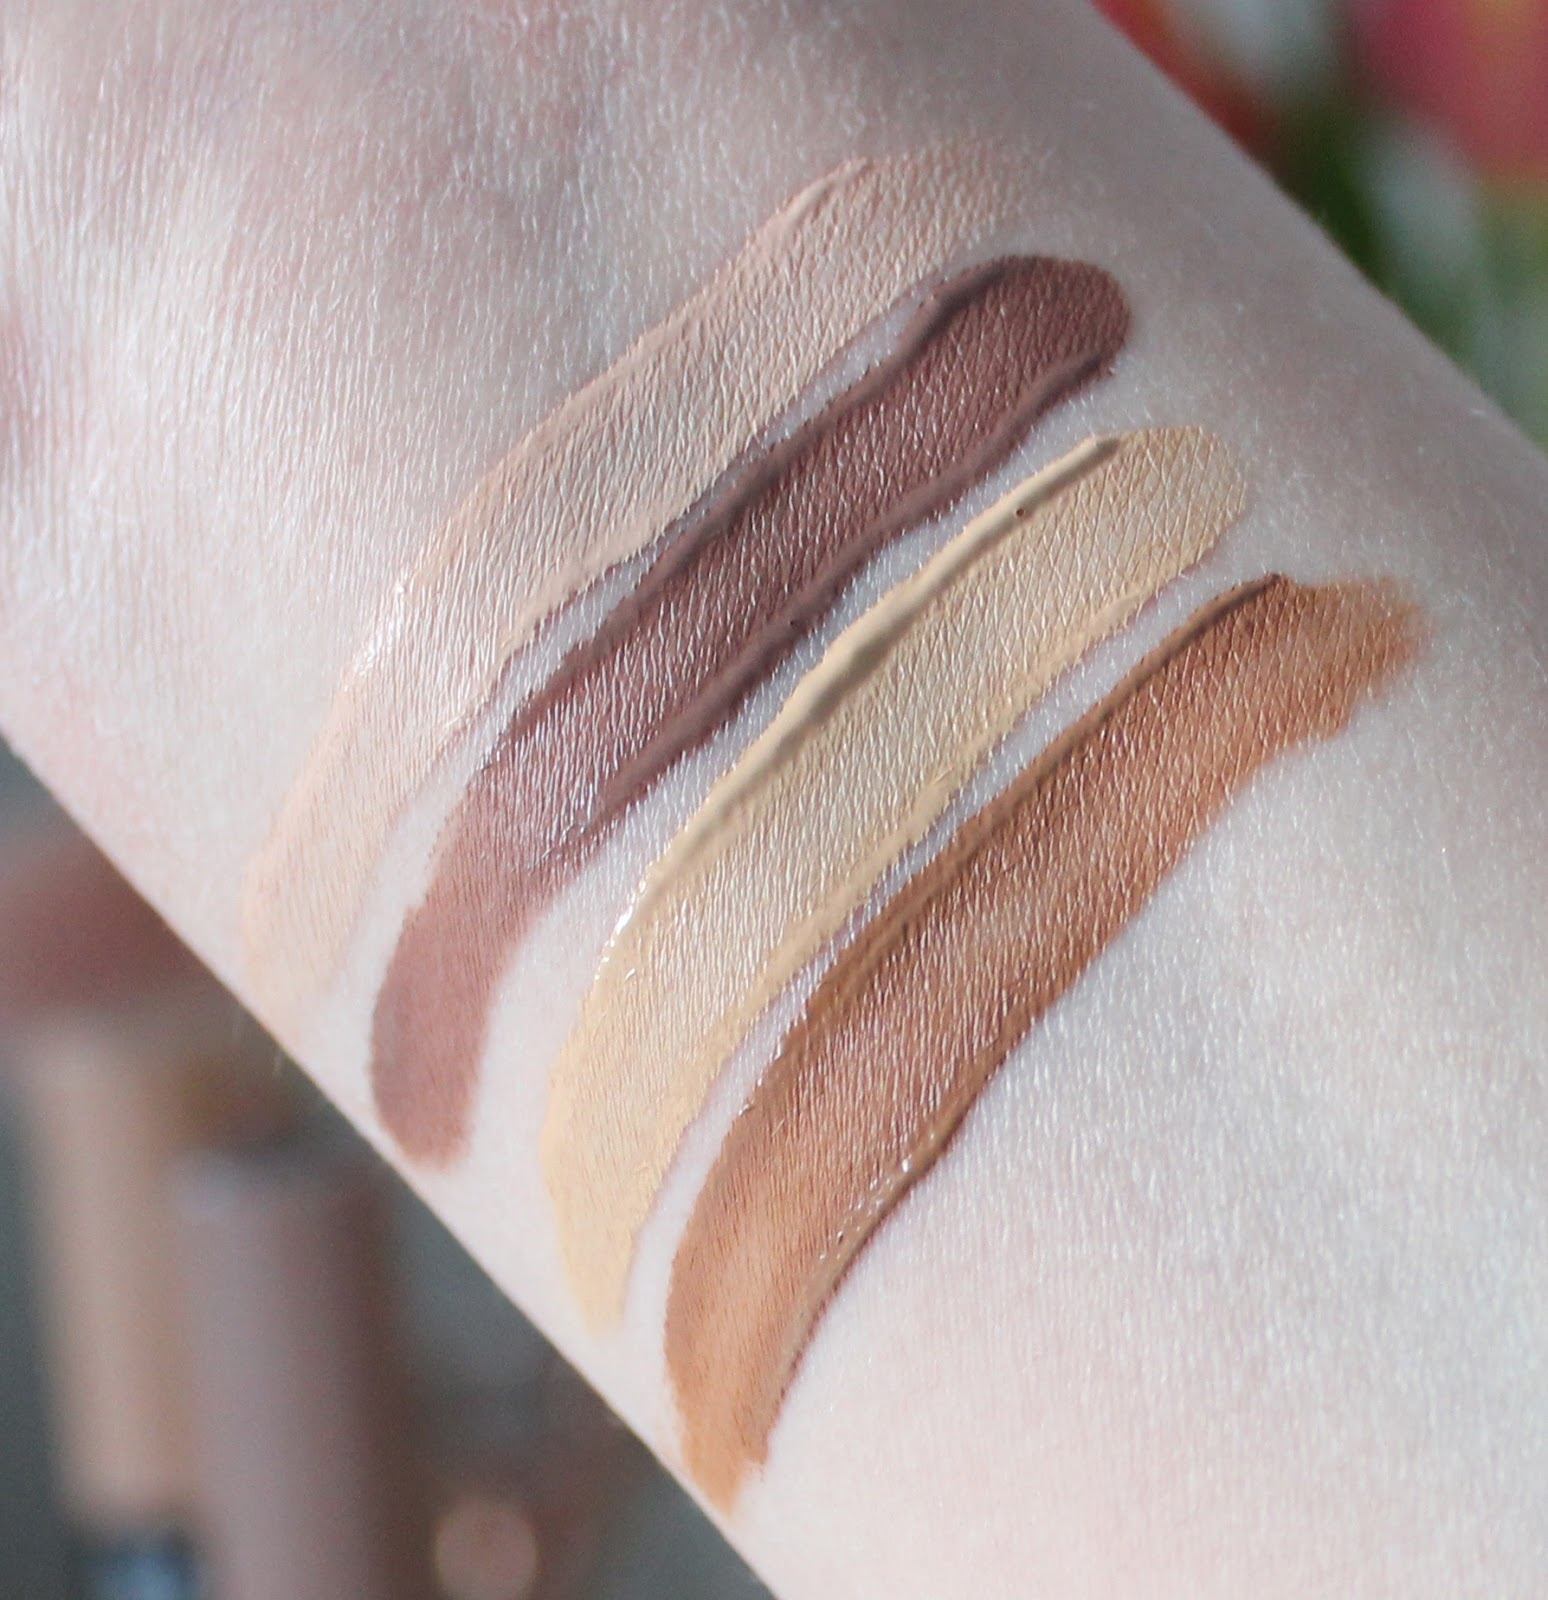 NYX sculpt and highlight sticks review and swatches shades one and two